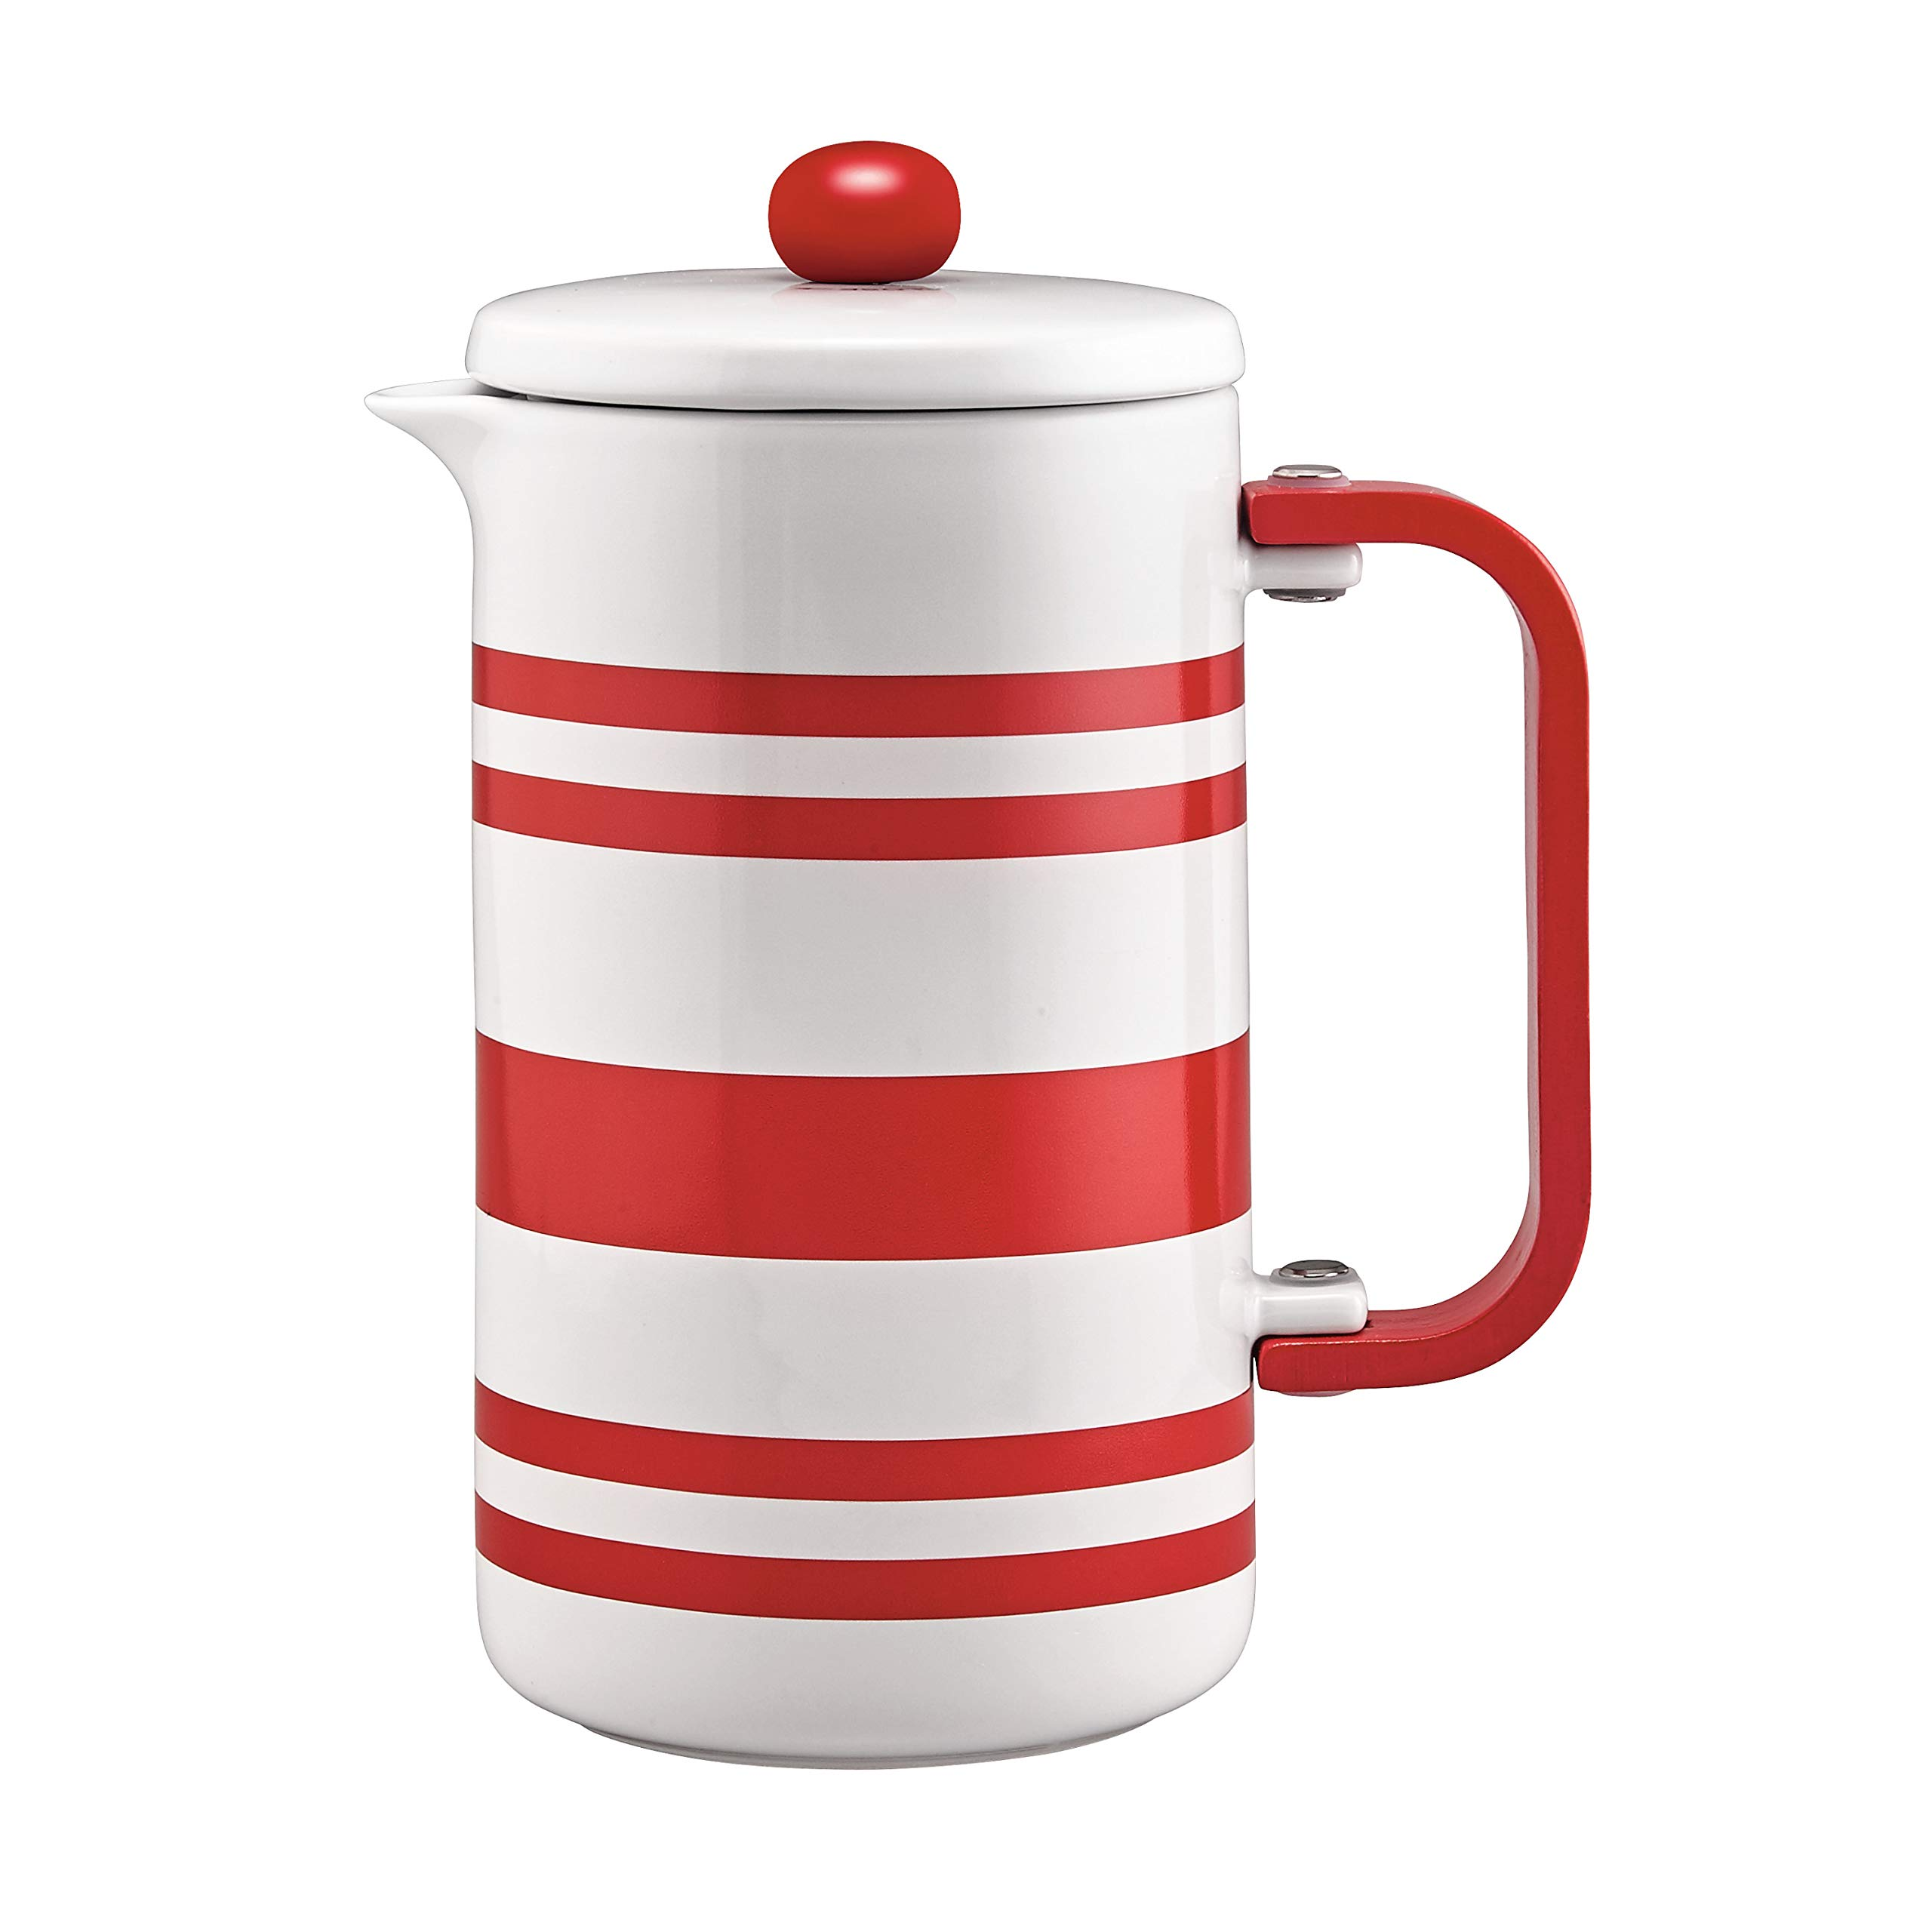 BonJour Stoneware French Press, 8-Cup, Red Stripes